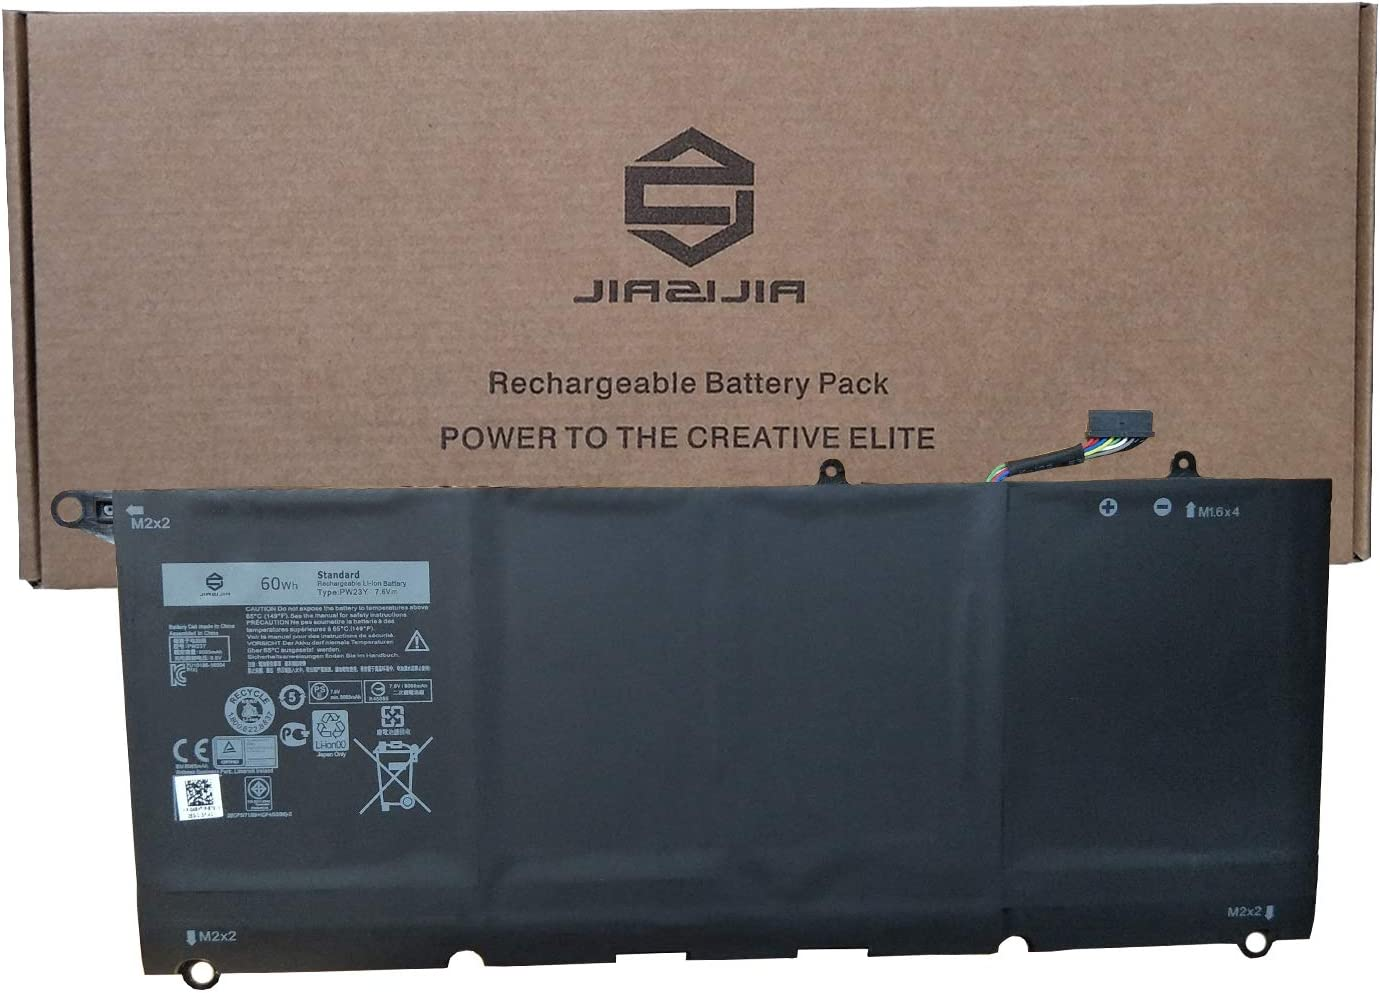 JIAZIJIA Free shipping 55% OFF PW23Y Laptop Battery Replacement for 13 X Dell 9360 XPS